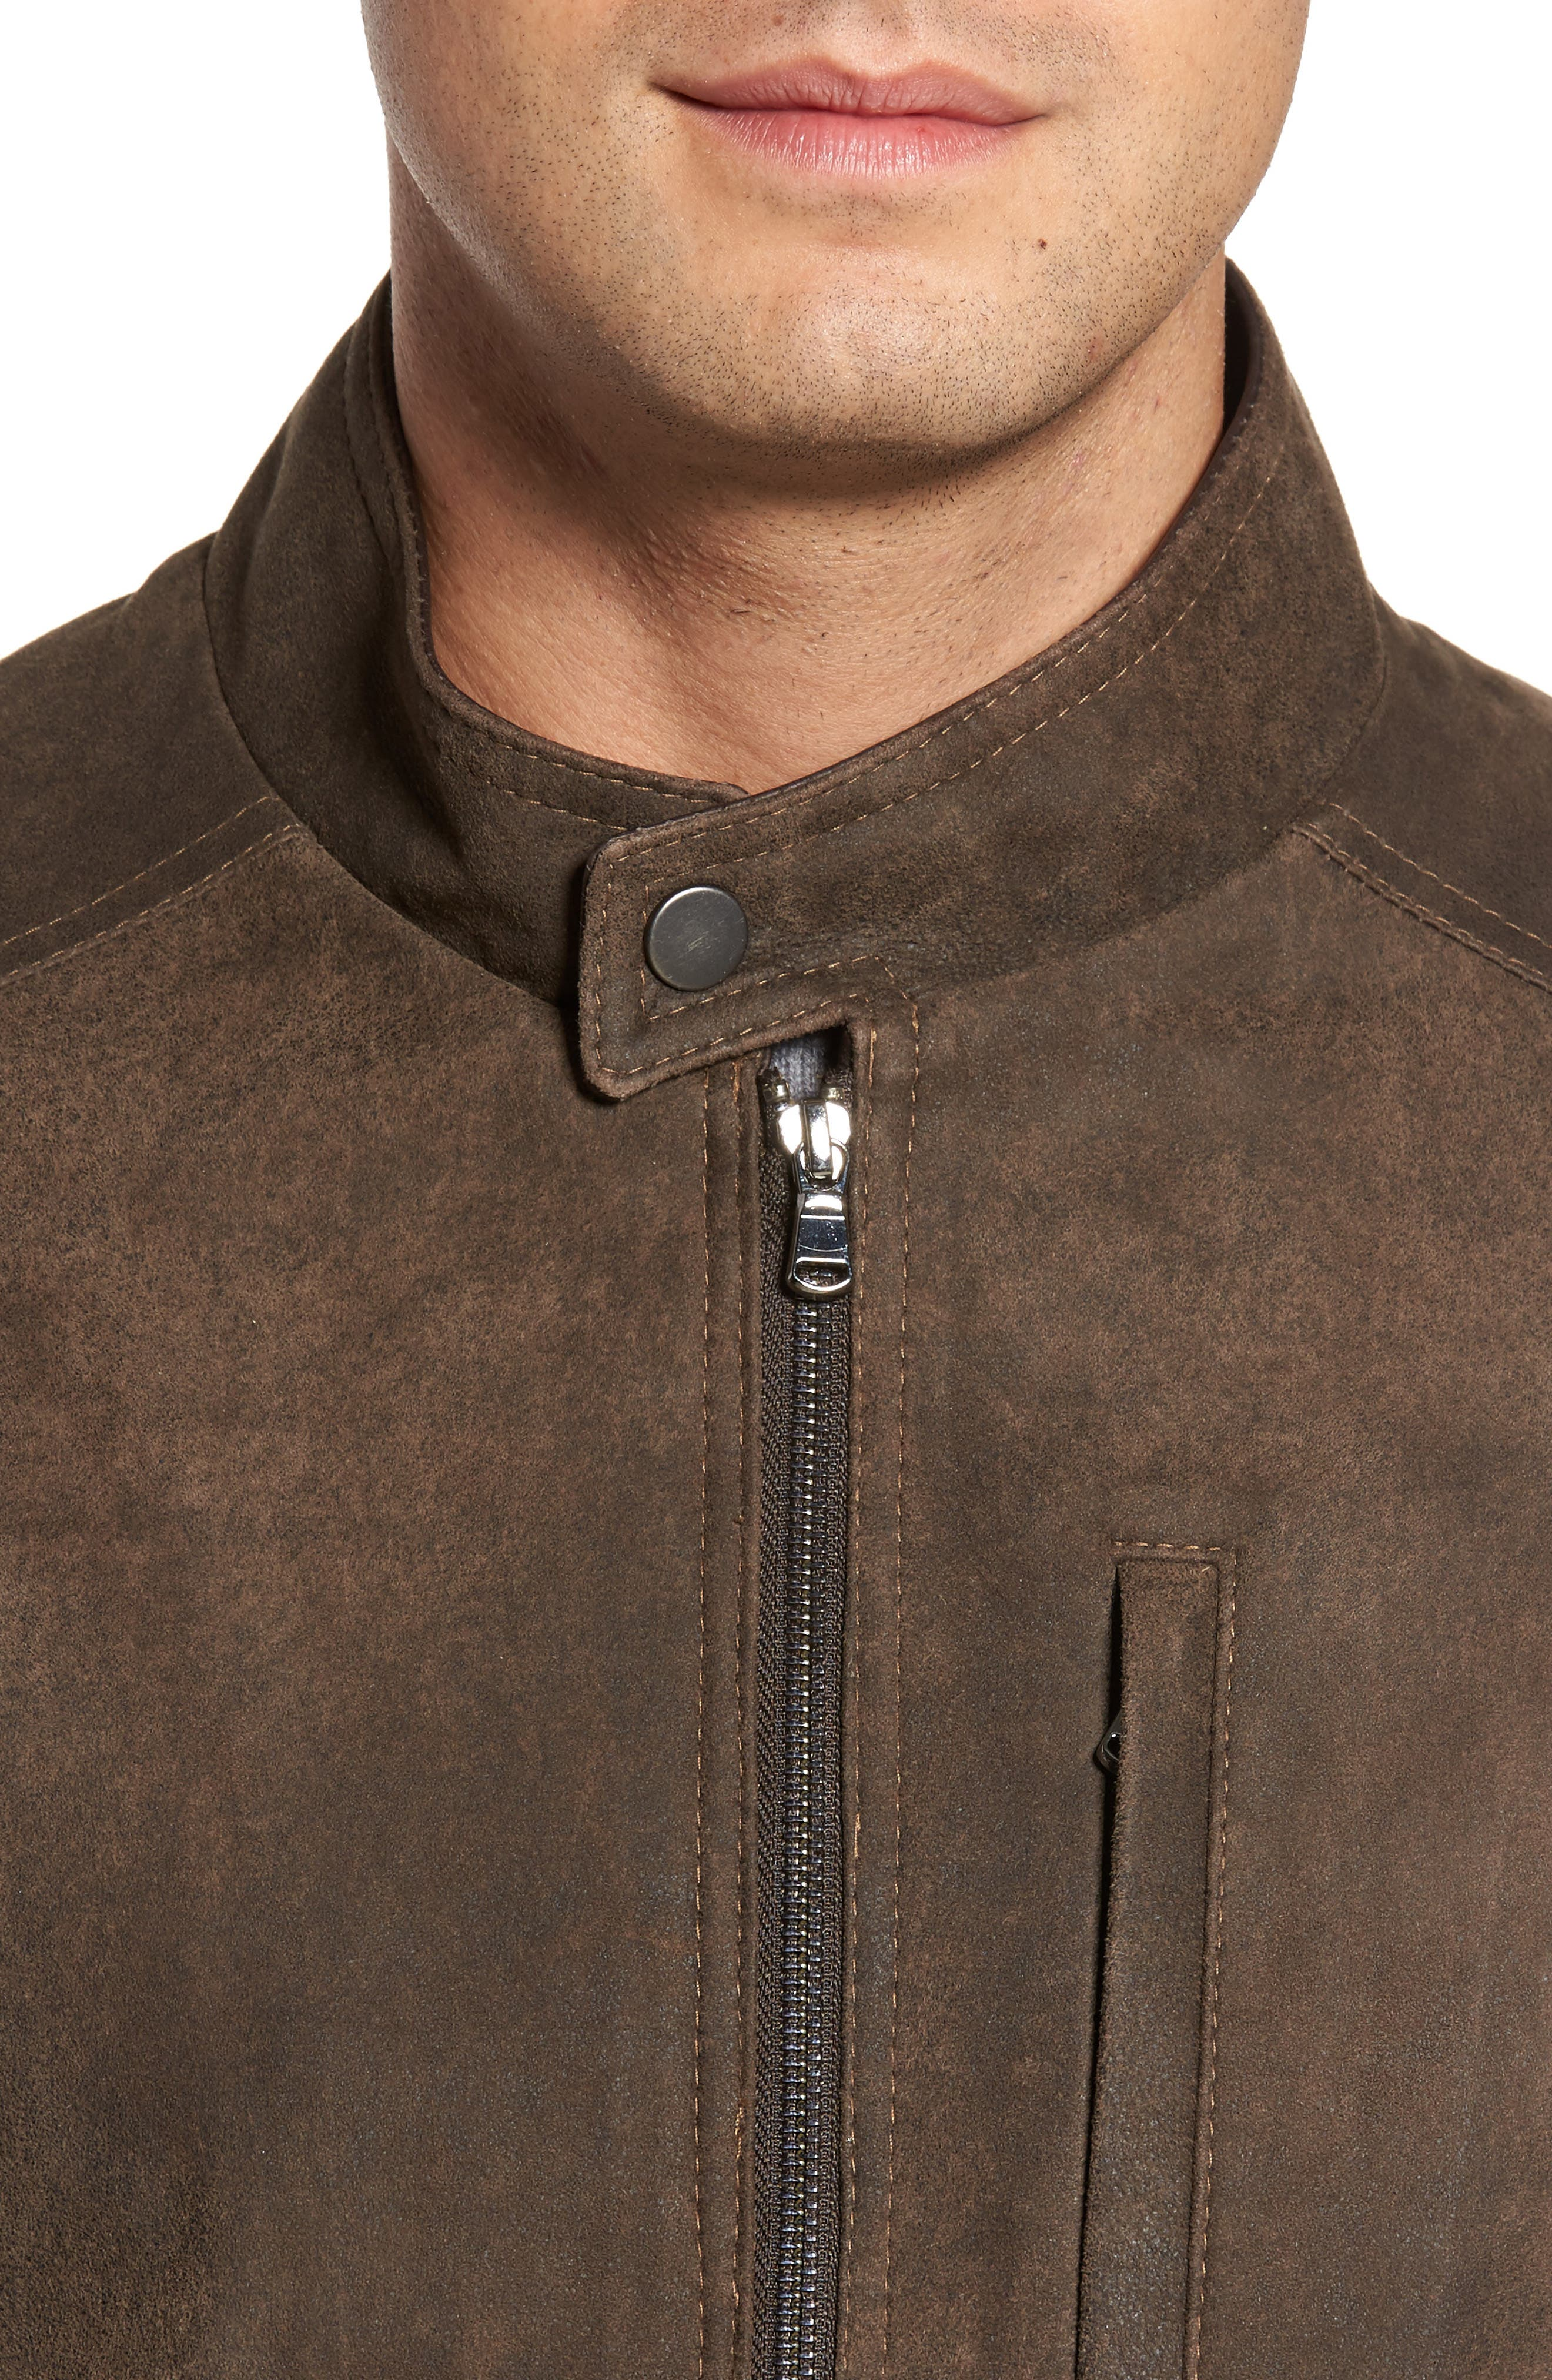 Suede Moto Jacket,                             Alternate thumbnail 4, color,                             FRONTIER/ COCOA